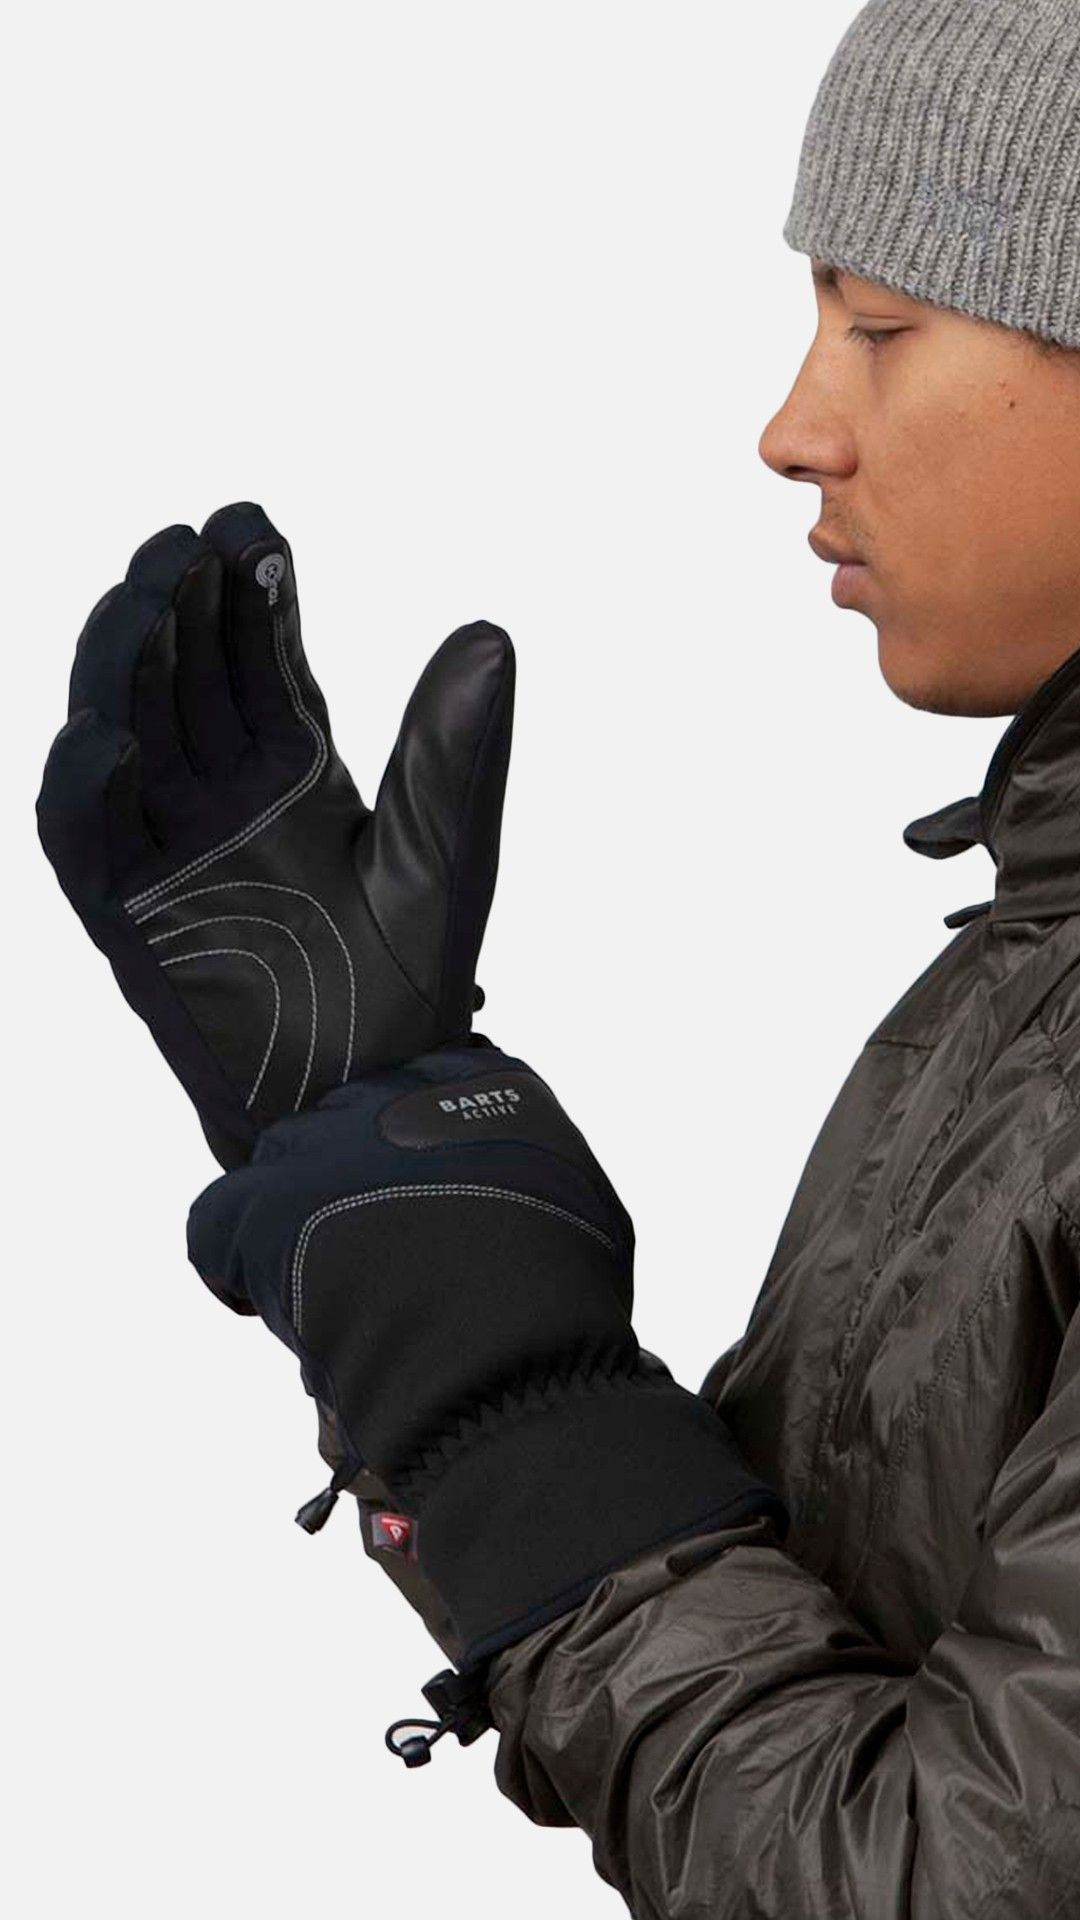 BARTS Touch Skigloves-2